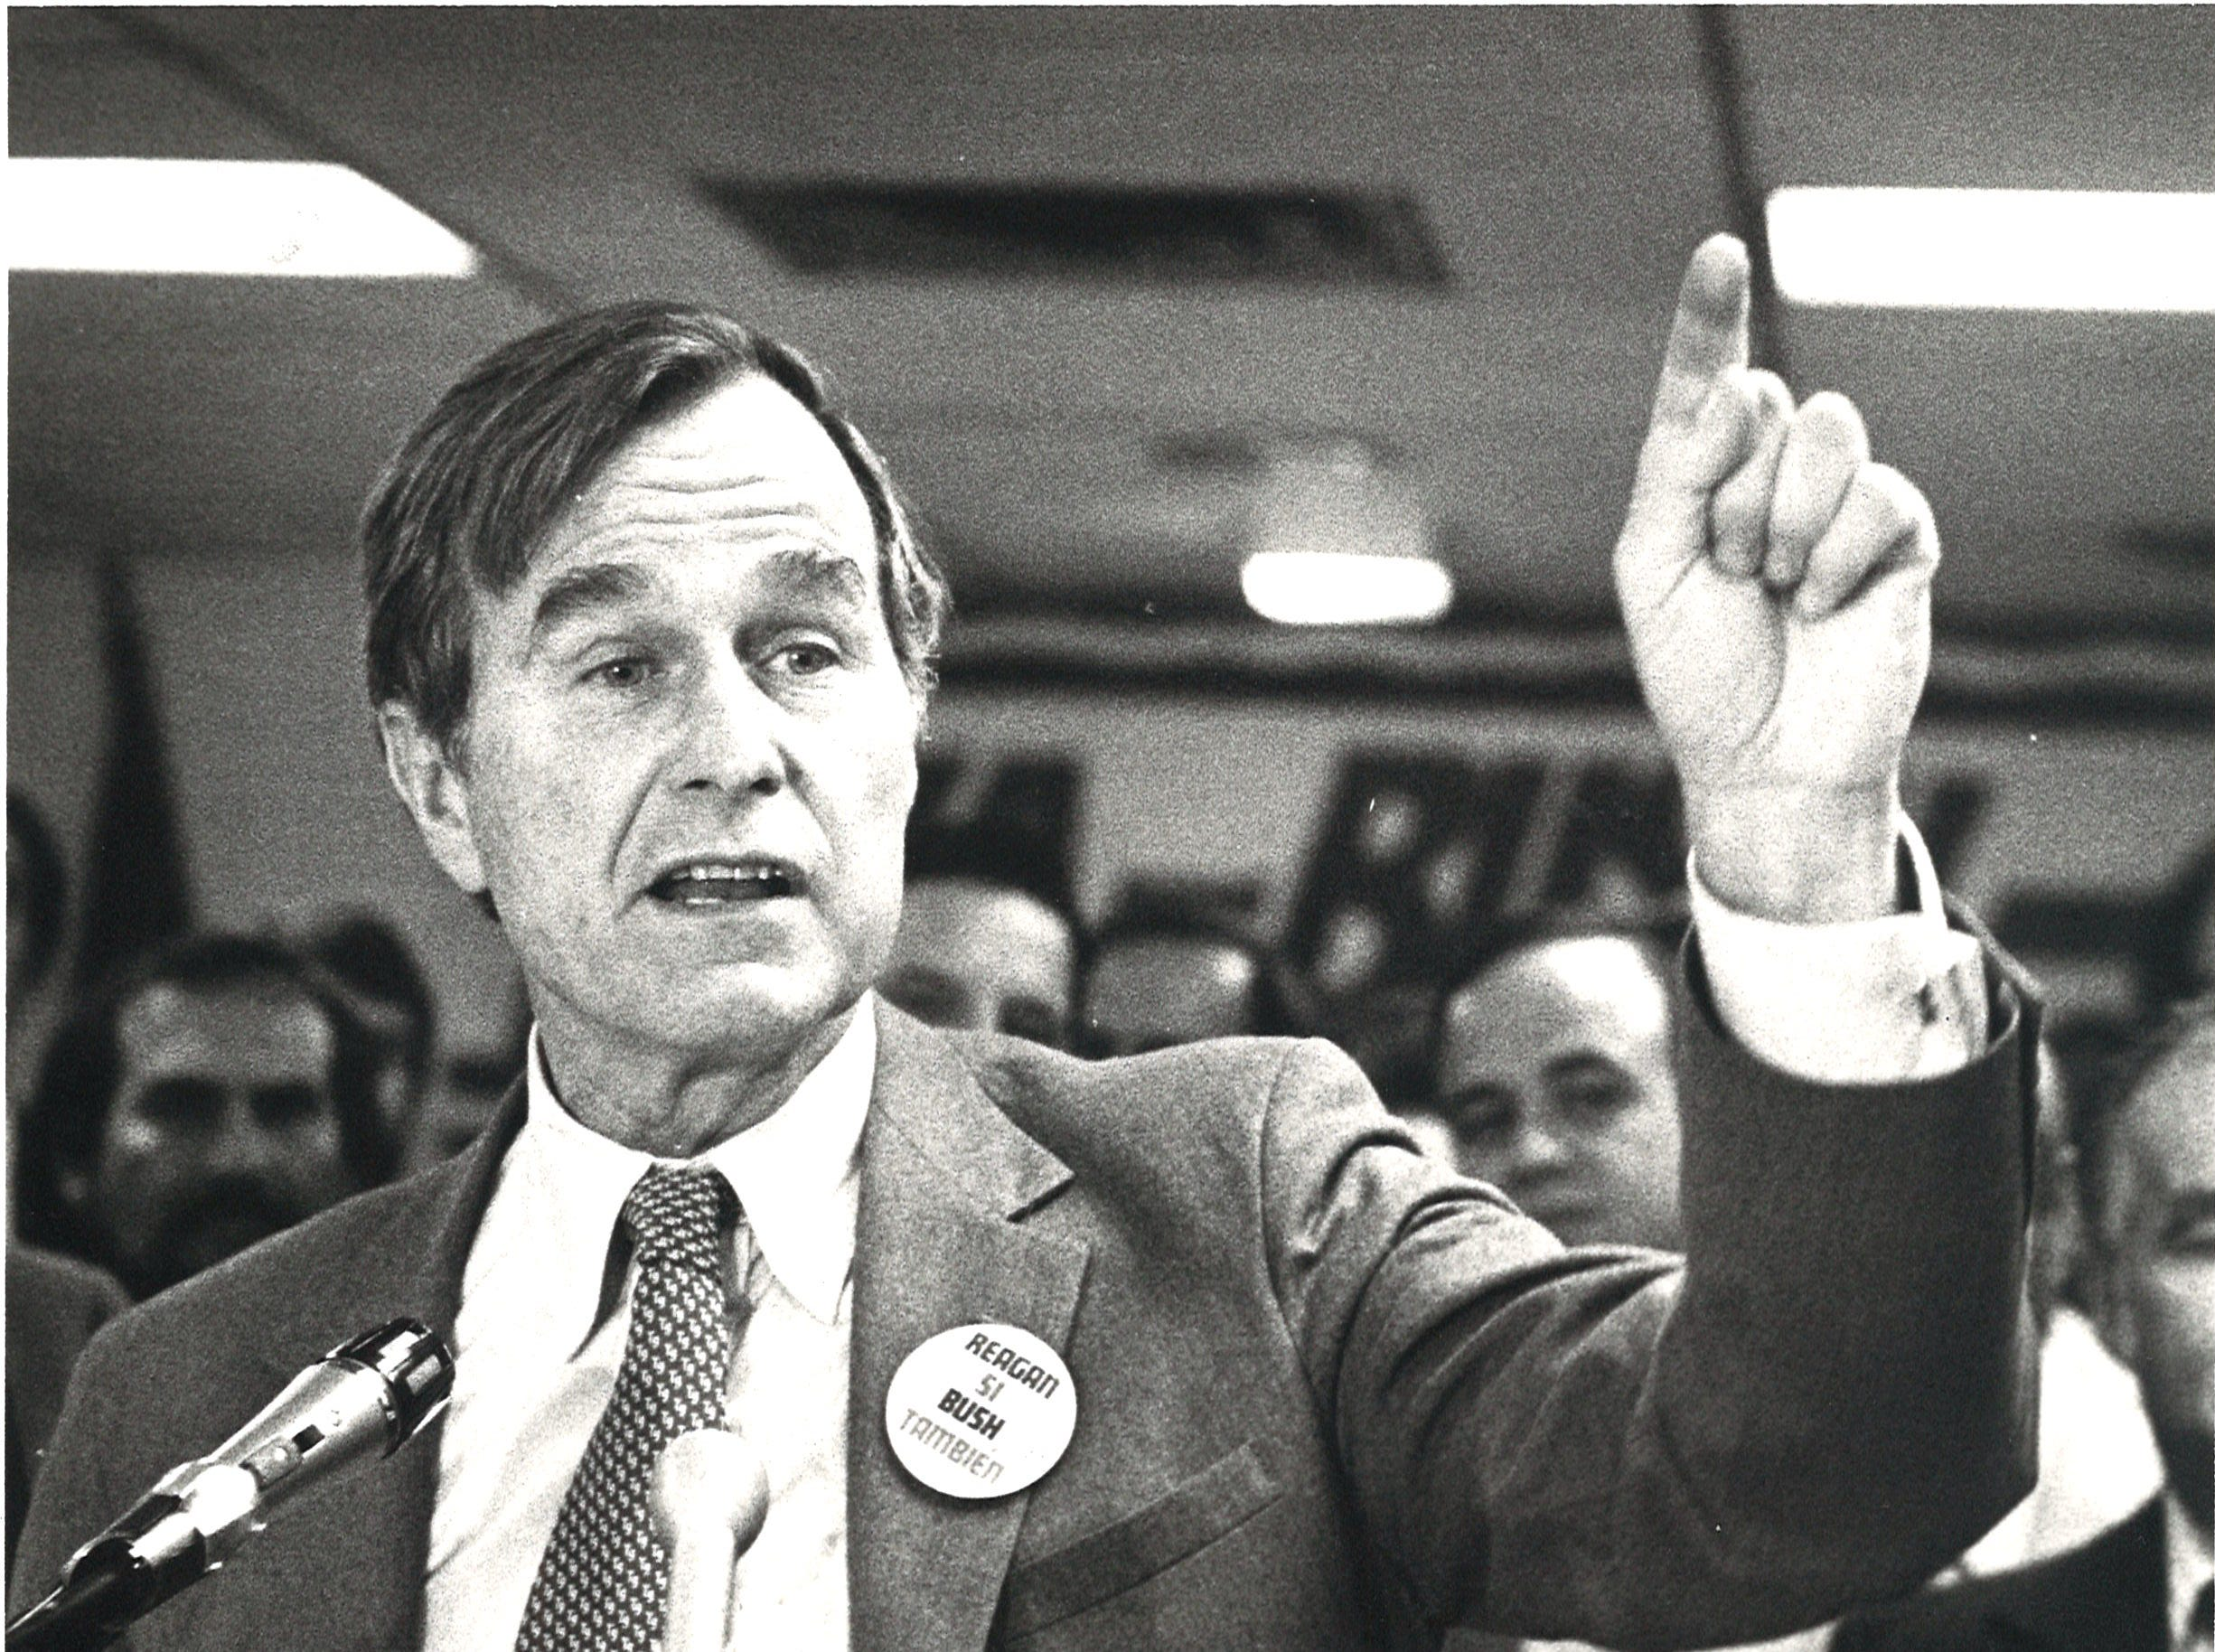 George Bush speaks at a press conference at Corpus Christi International Airport on Oct. 29, 1980.